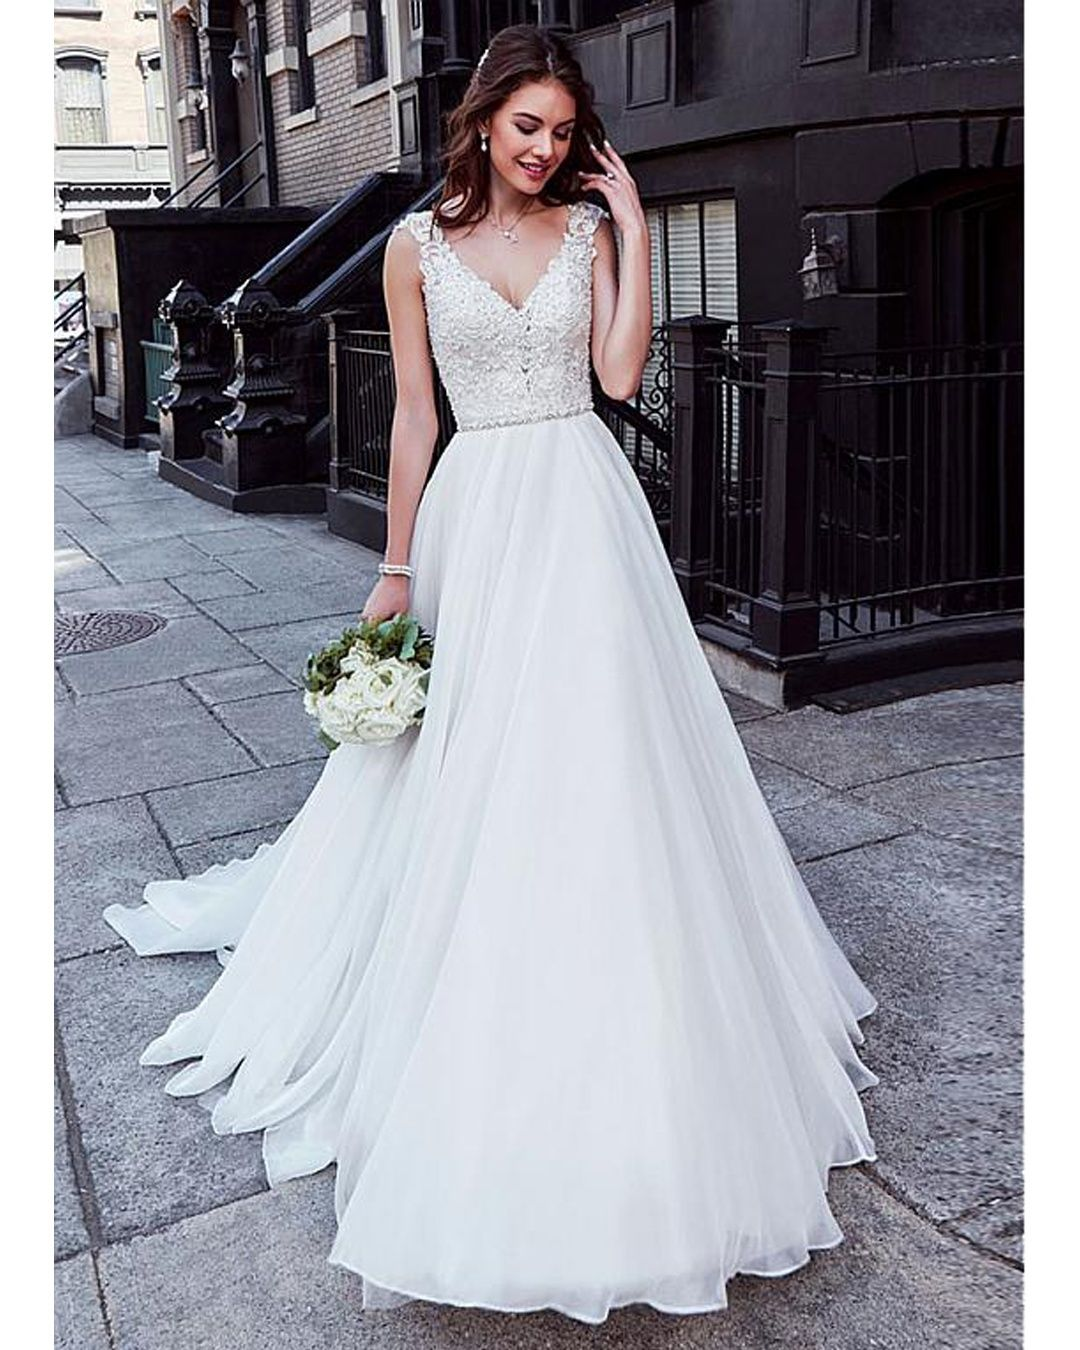 » Charming Tulle & Chiffon V-neck Neckline Natural Waistline A-line Wedding Dress With Beaded Lace Appliques